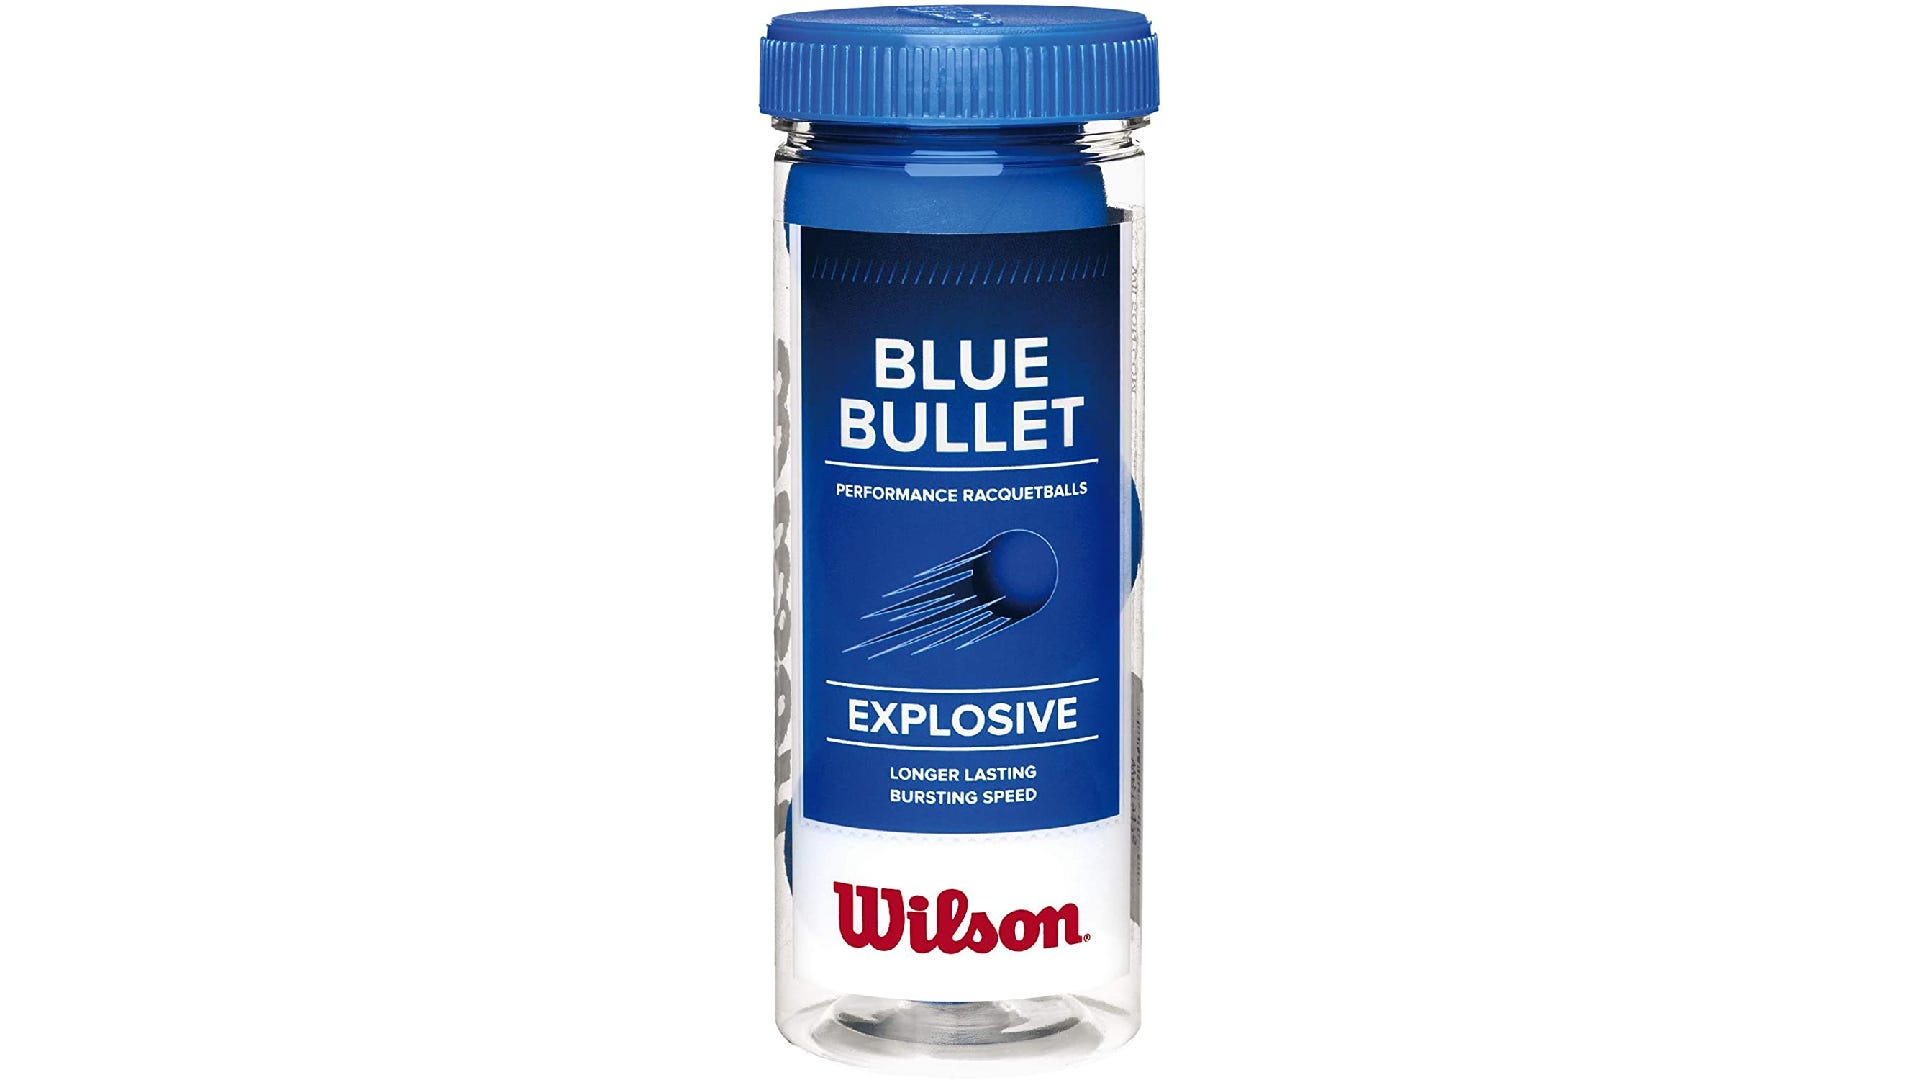 A can of three blue racquetballs from Wilson.